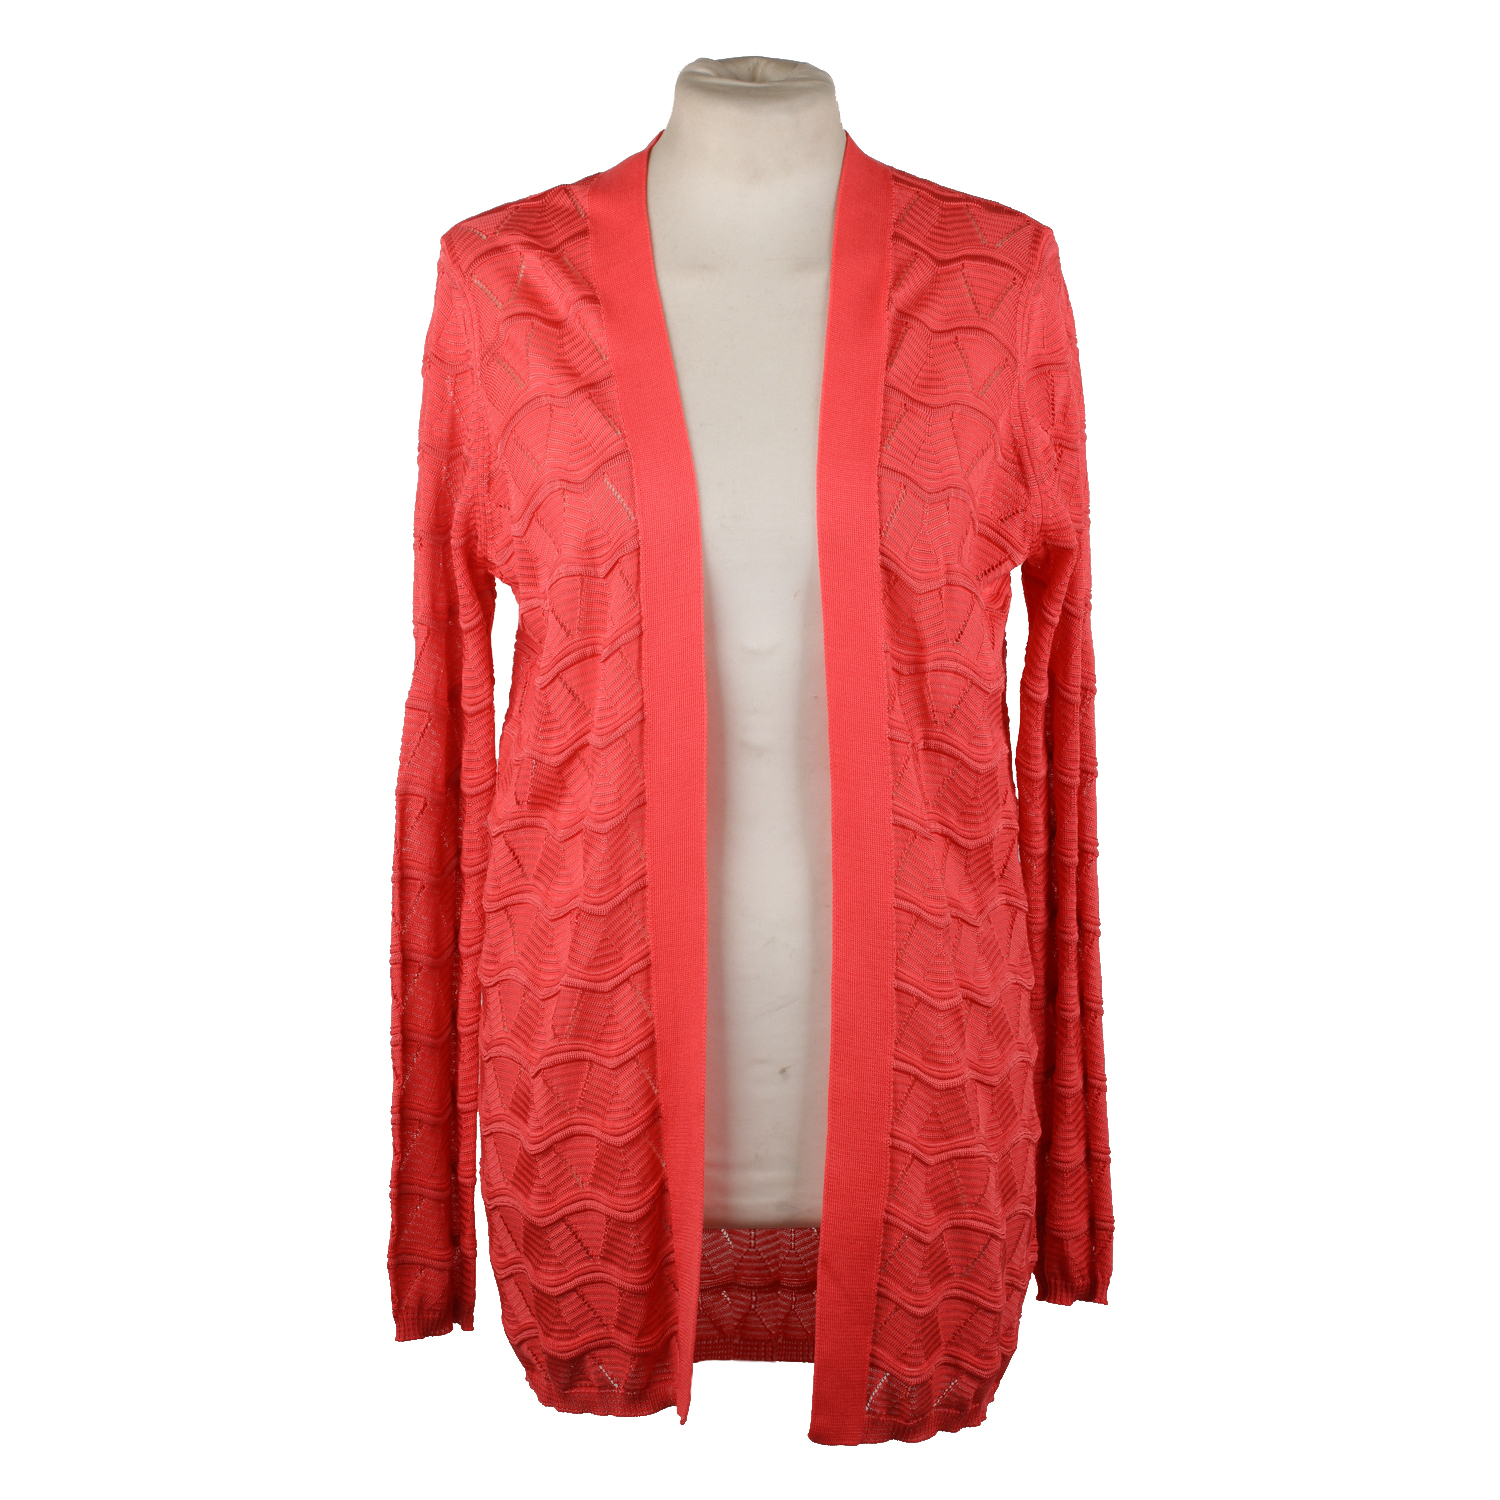 5692007c77d4 M MISSONI Cotton blend cardigan in pink color. Light weight Knit fabric.  Composition  54% Cotton